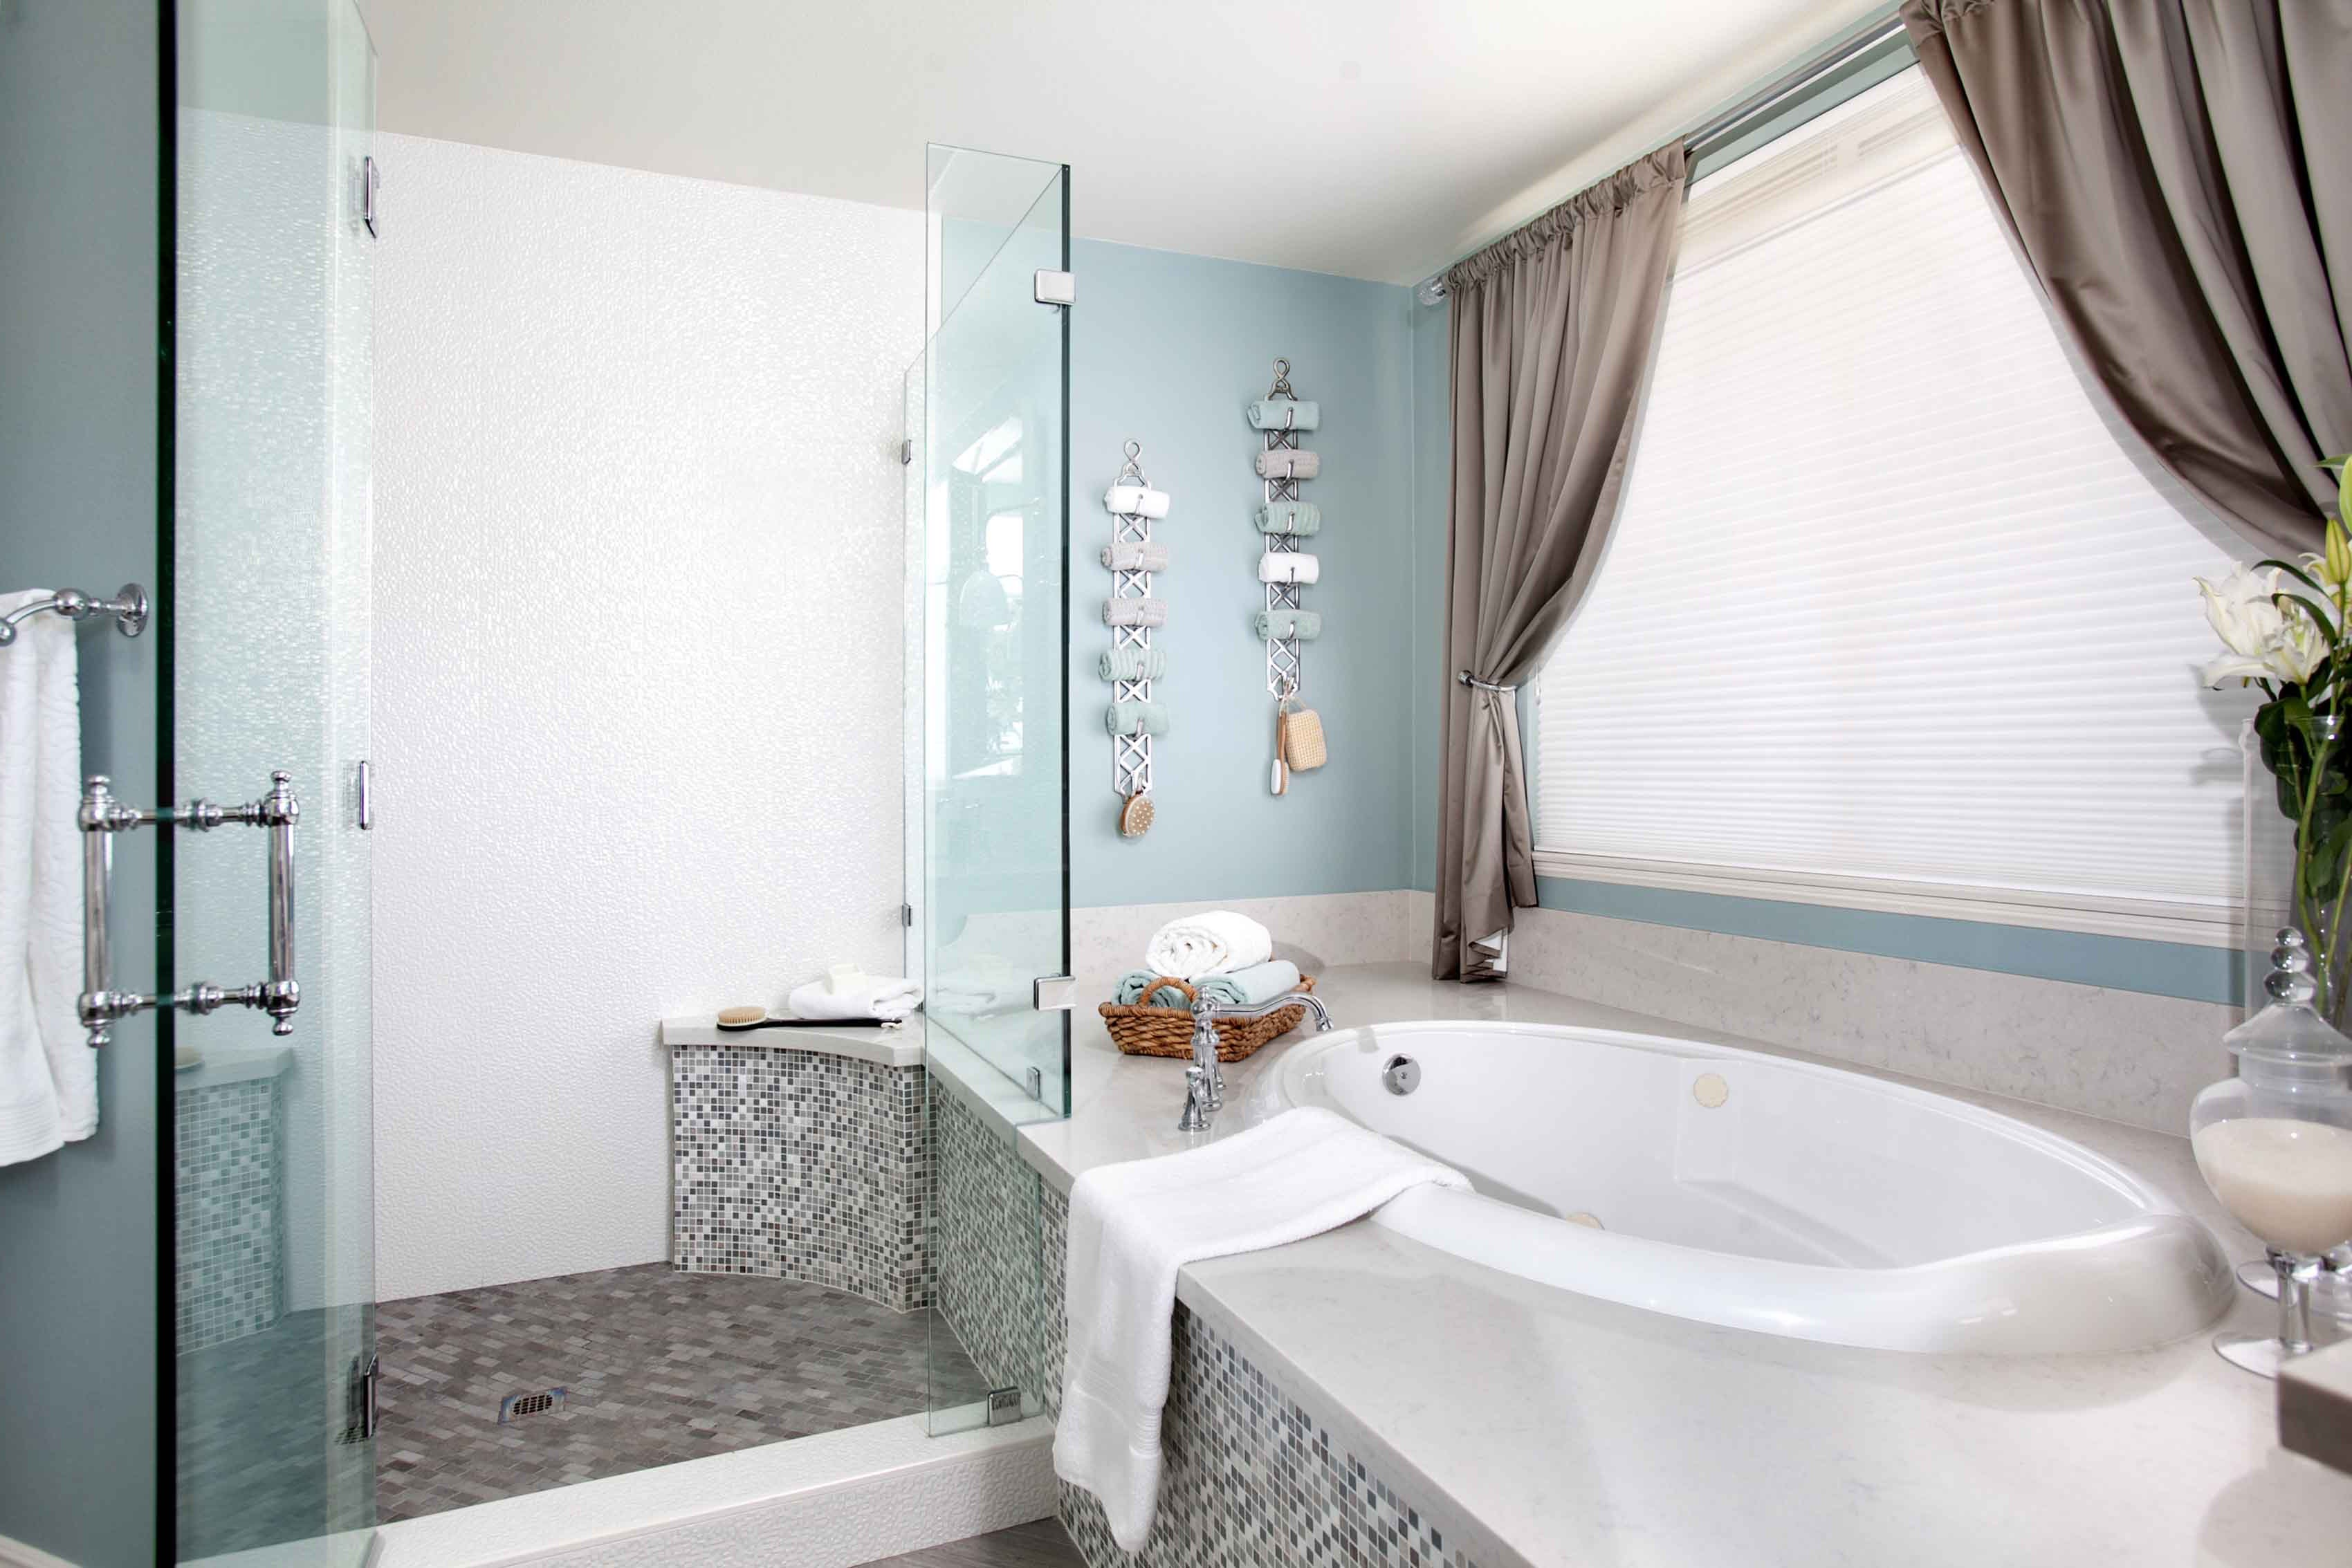 Modern Walk In Shower For Luxe Master Bathroom Boasts Oval Tub (Image 16 of 22)